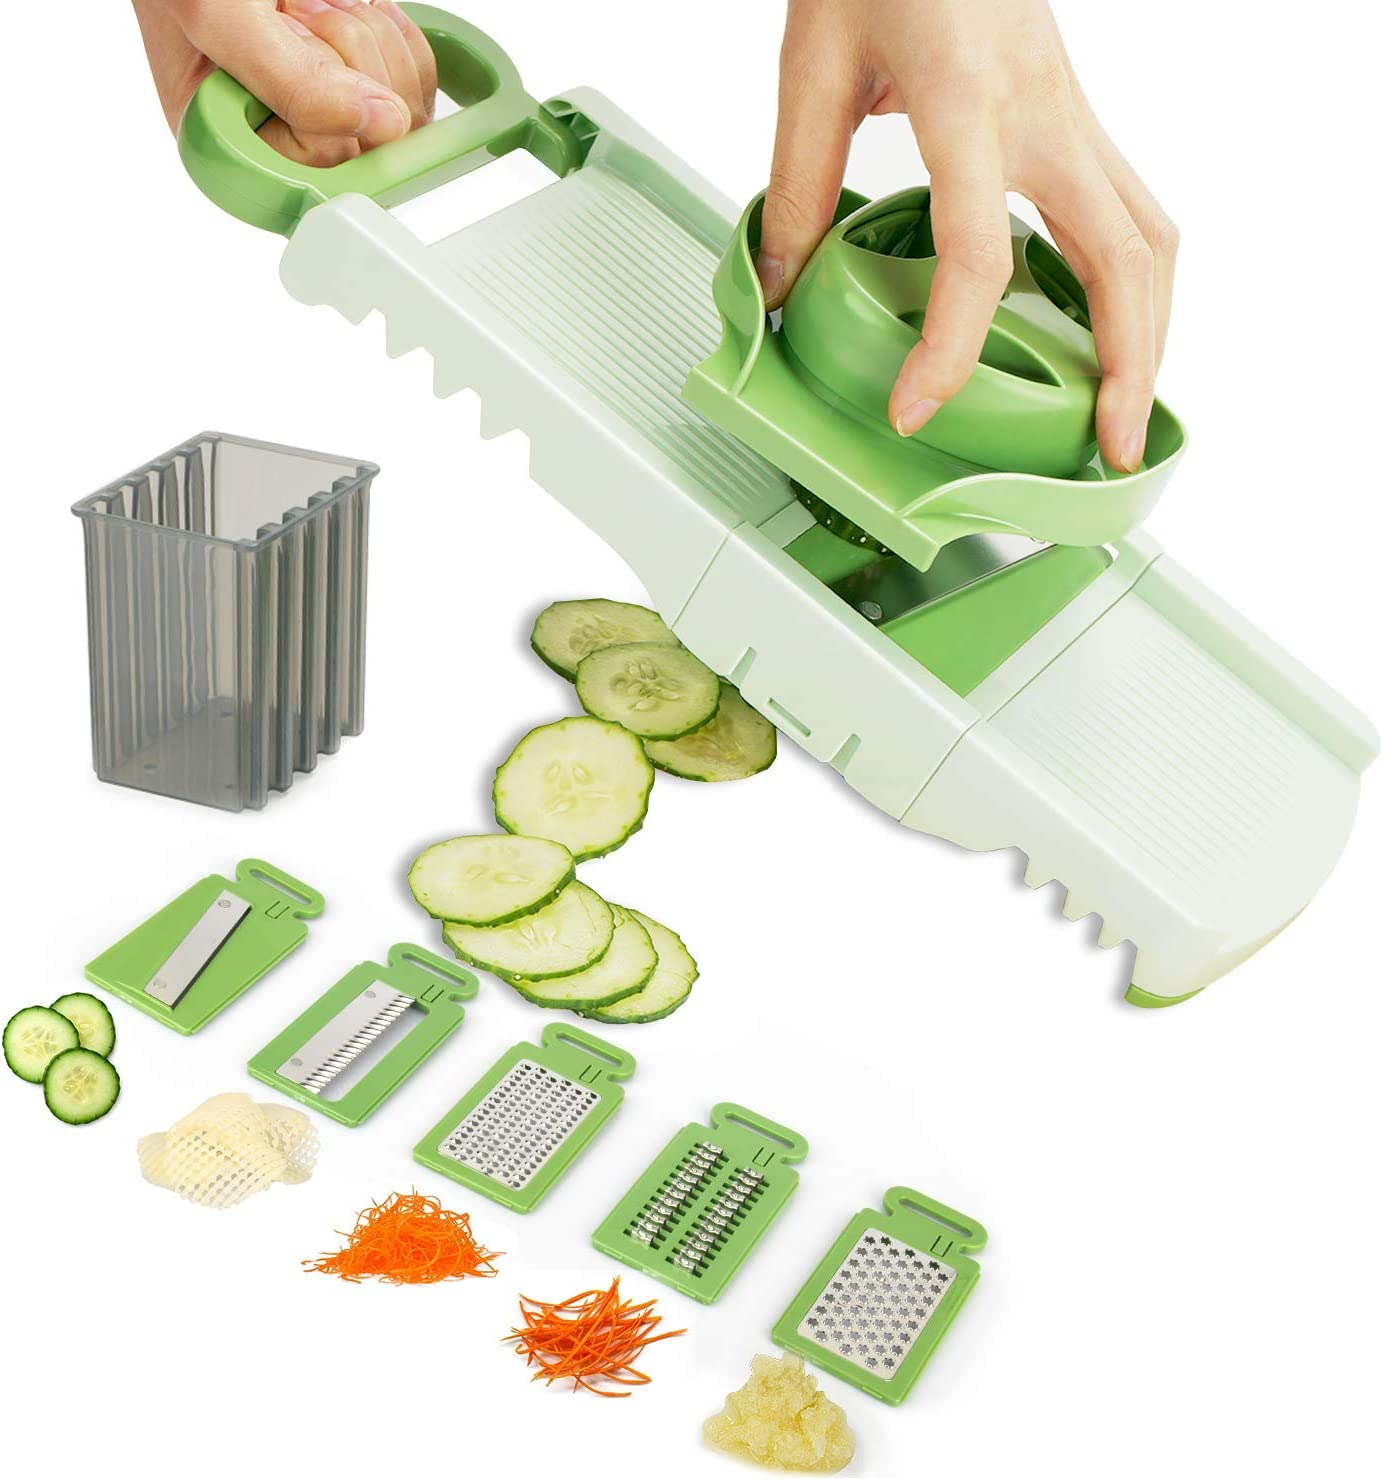 Aieruma Mandoline Slicer Vegetable, Premium Quality 6 Blades Adjustable Cheese/Vegetable Slicer, Veggie Cutter, Shredder, Grater, Julienne Slicer, Kitchen Maker for Low Carb-Free